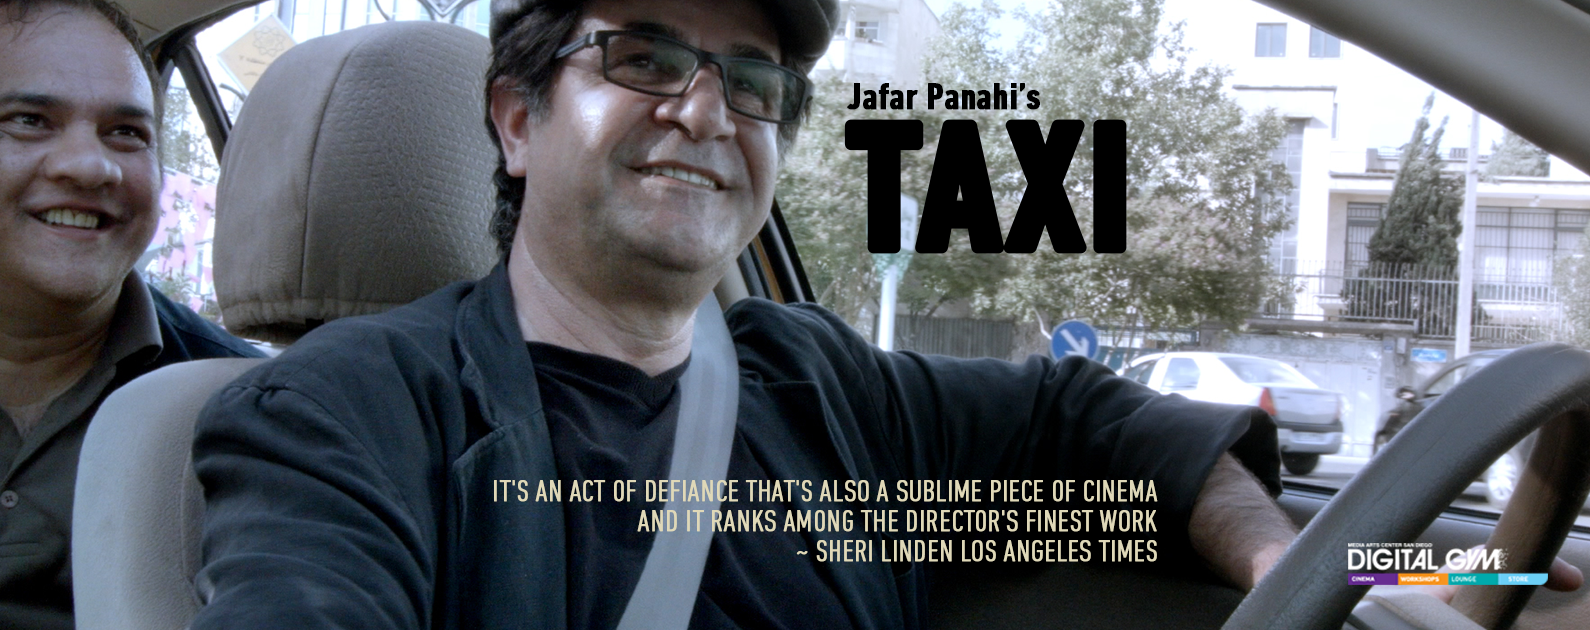 Jafar Panahi's TAXI Returns to the Digital Gym Cinema (Jan. 8 – 14)